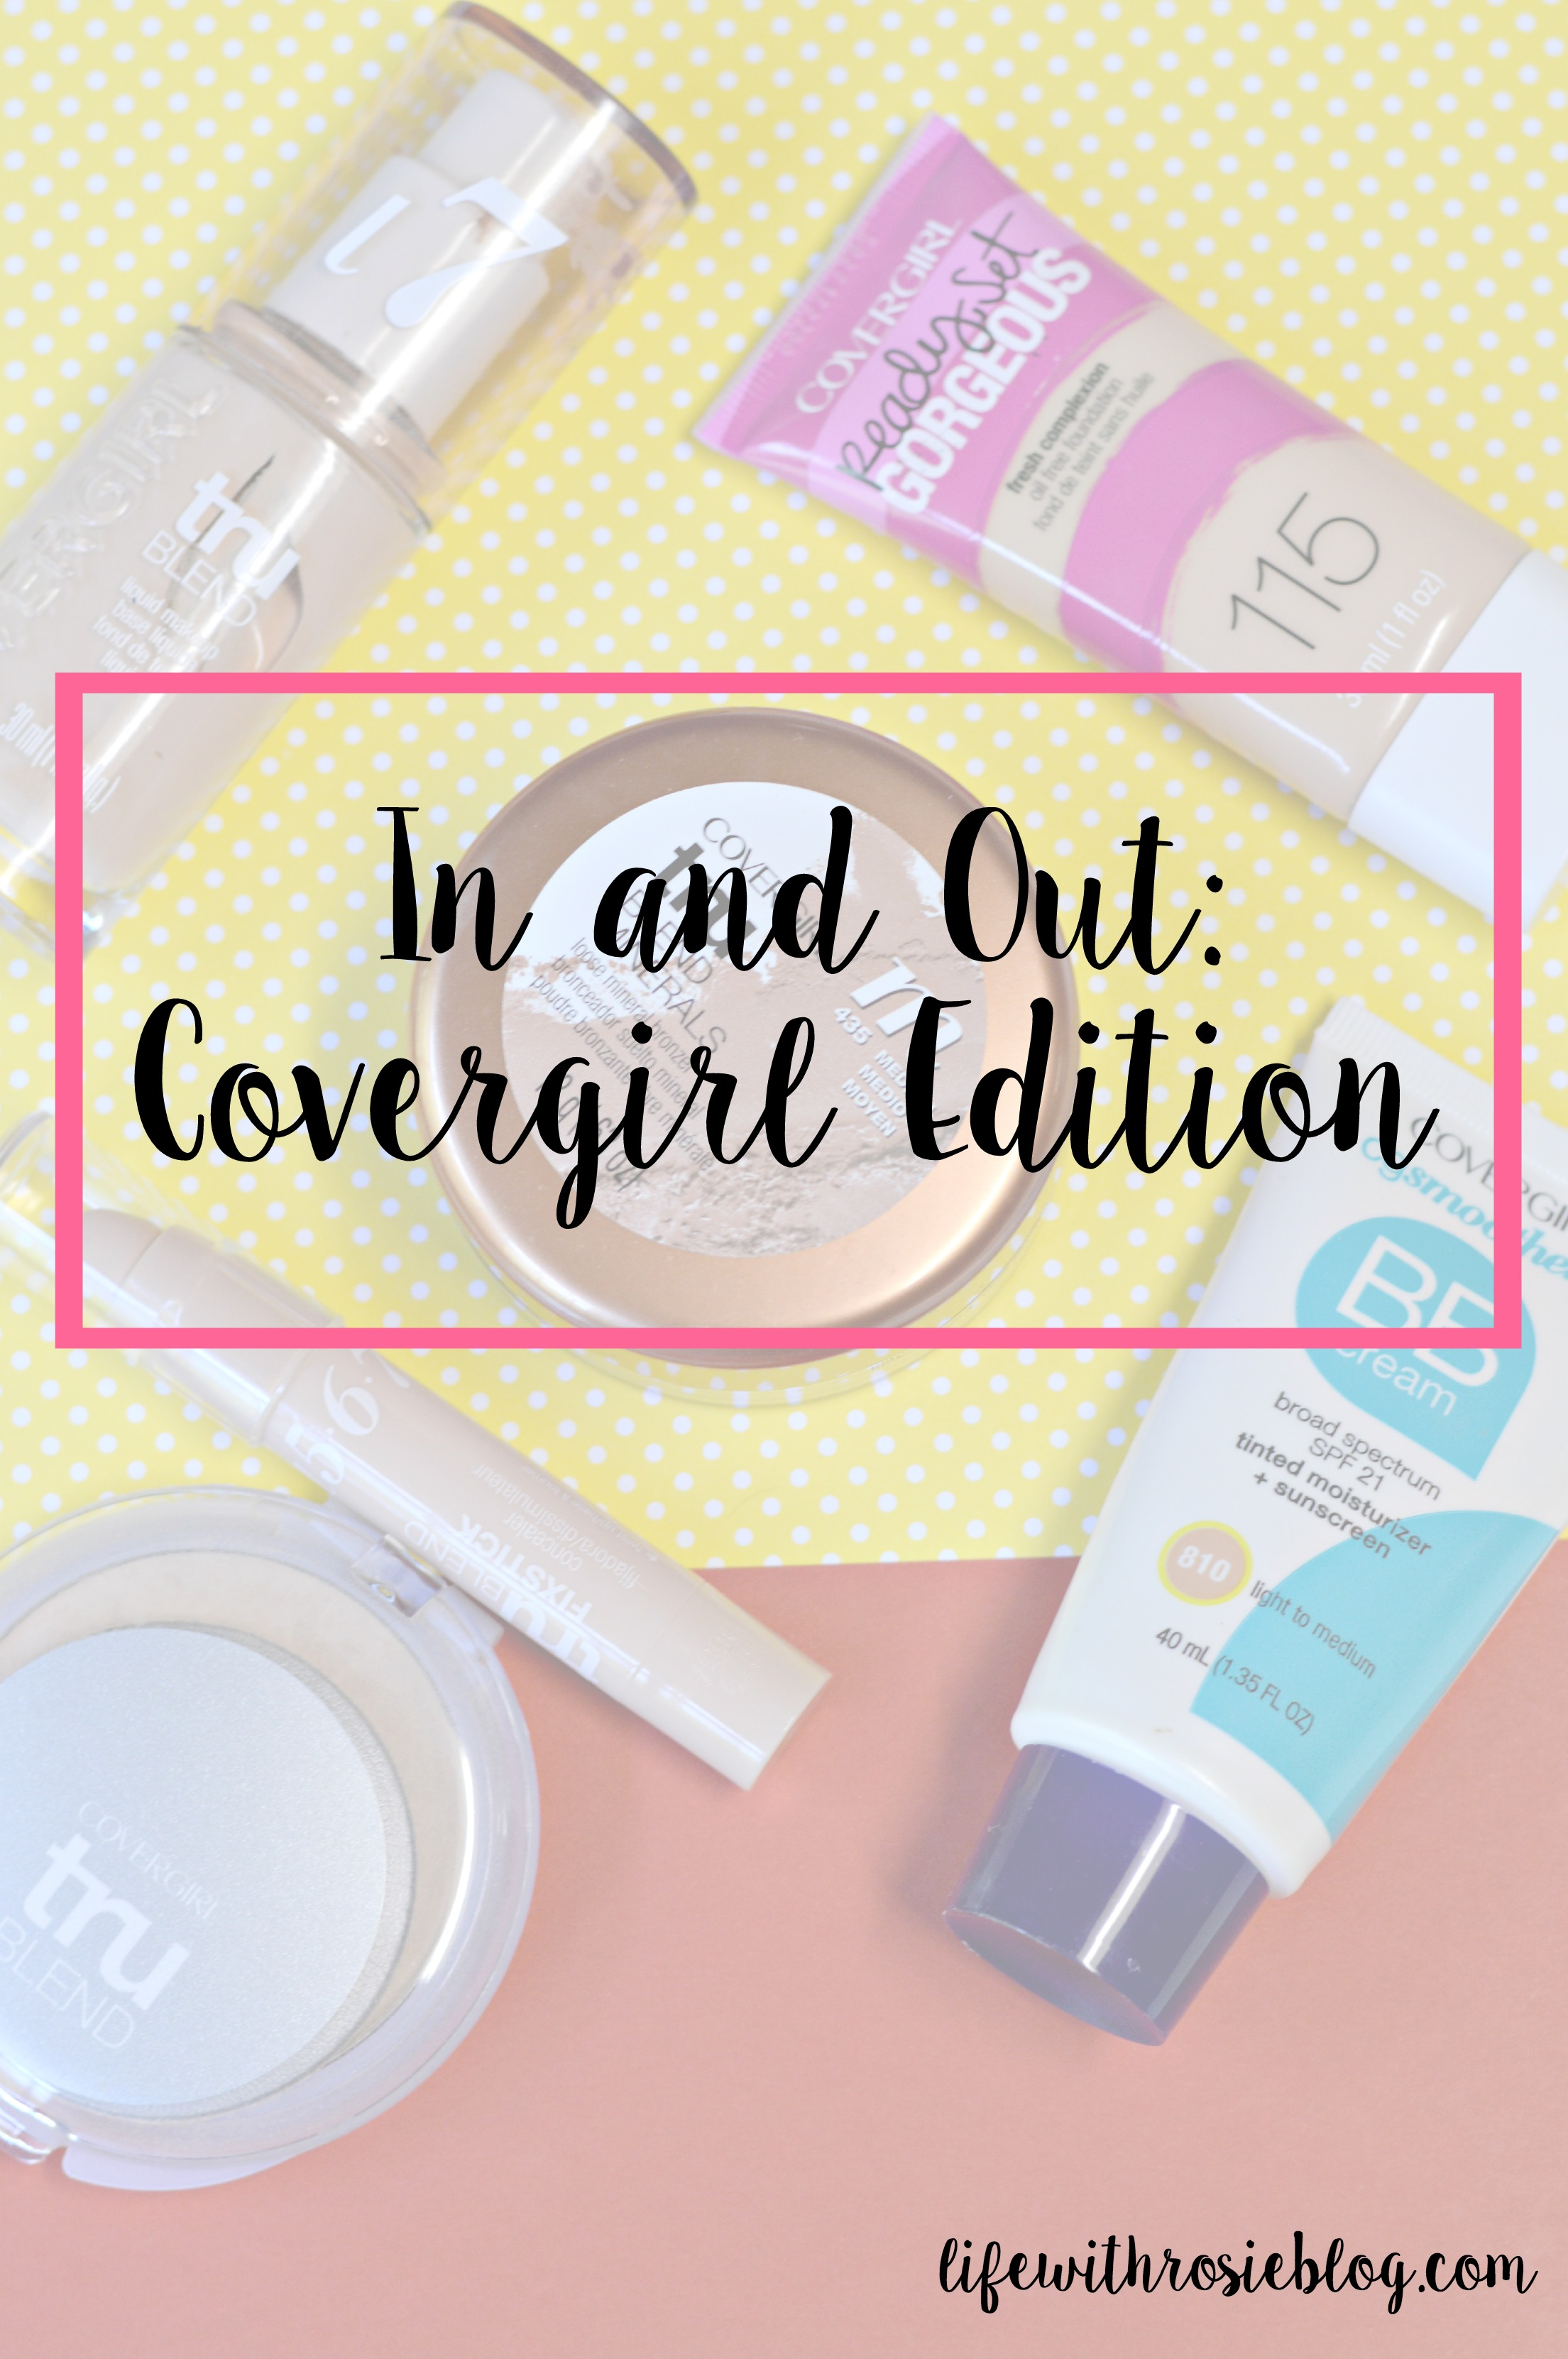 In and Out: Covergirl Edition. I wanted to know which Covergirl Products were good and which ones were fails, so I tried them all! Here is a list of the products that are IN and the products that are OUT // Life with Rosie